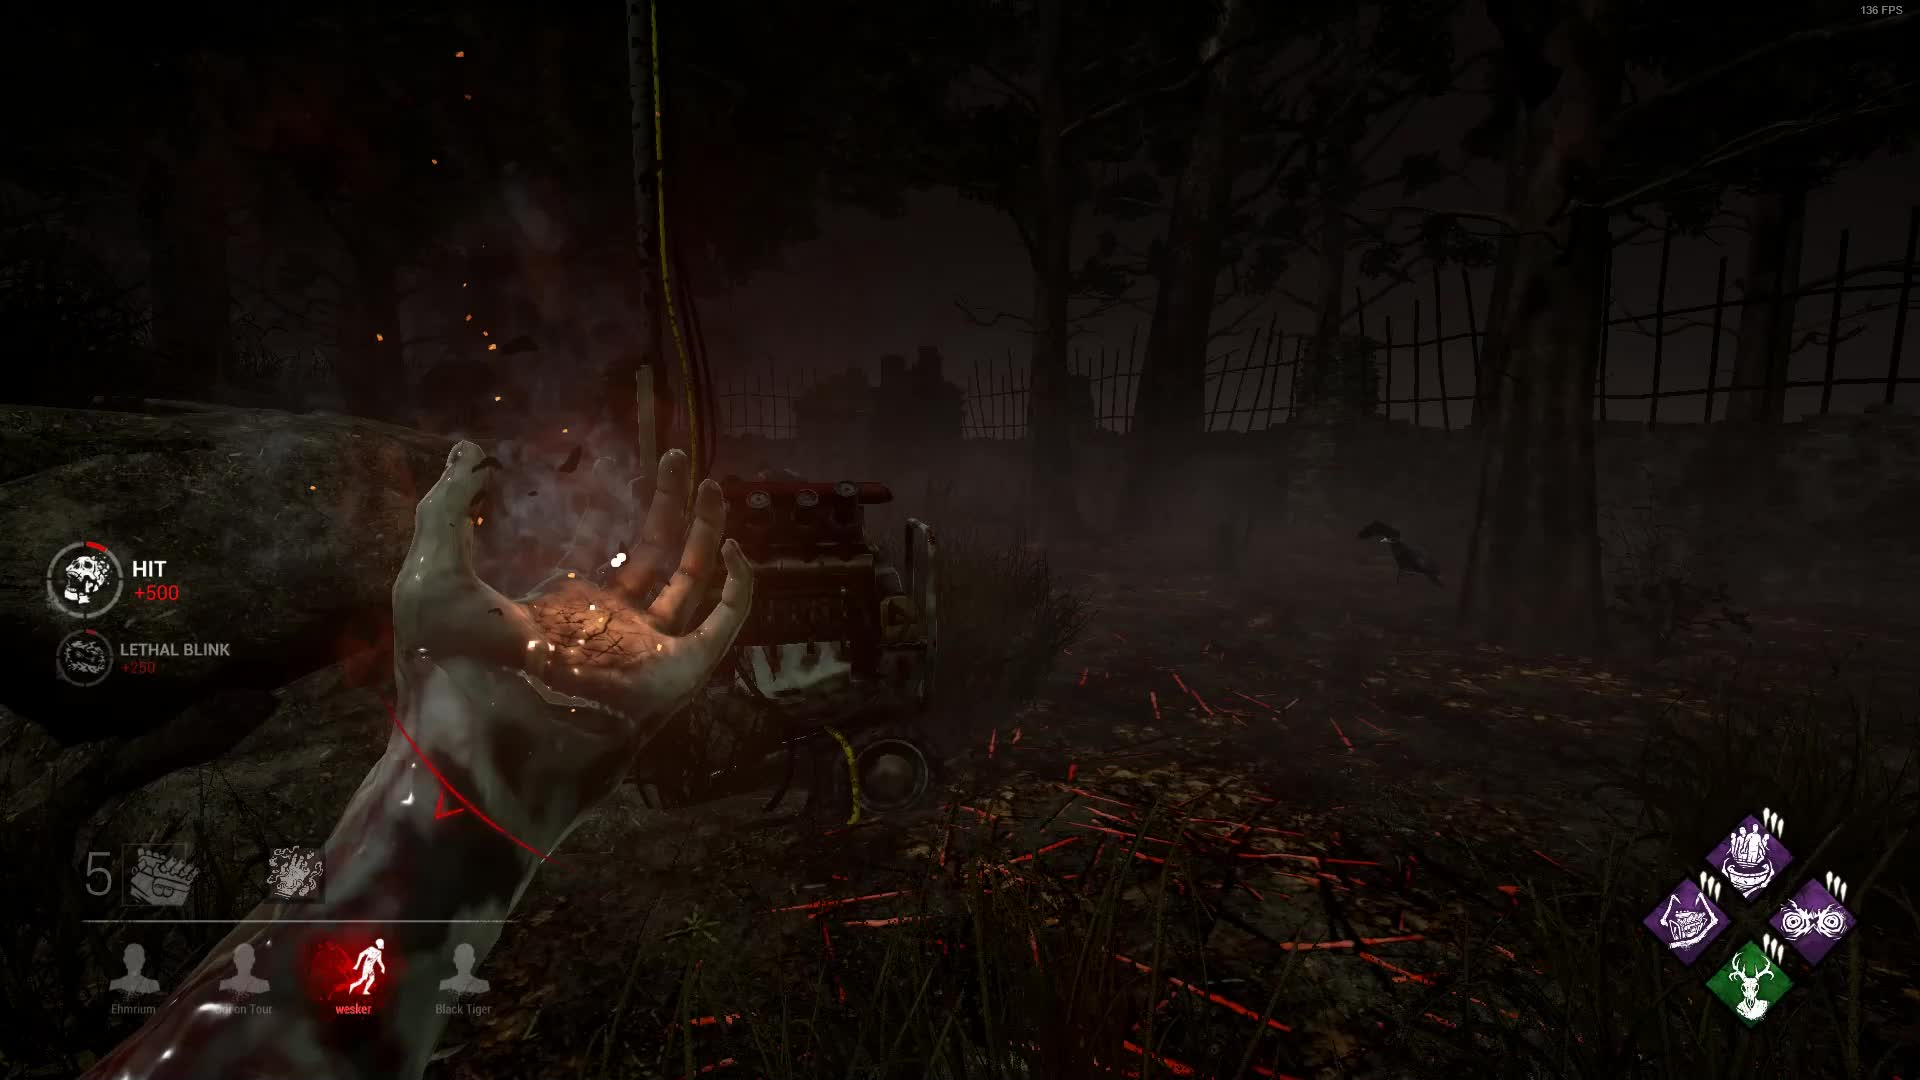 deadbydaylight, Dead by Daylight 2018.09.09 - GIFs